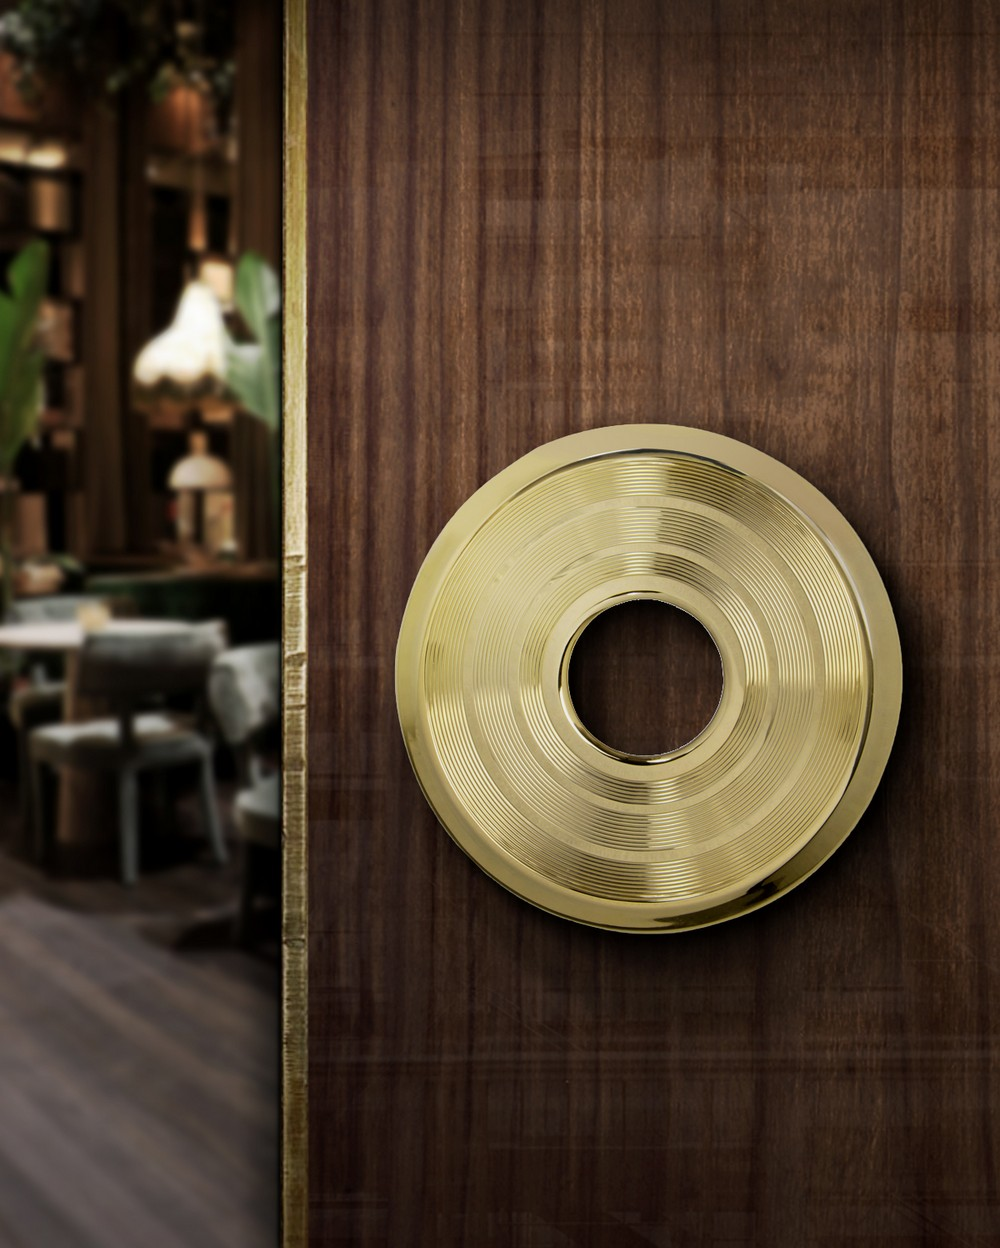 Hospitality Design The Best Door Pulls to Use in Fashionable Projects 8 hospitality design PullCast Inspirations: Admire 10 Striking Hospitality Design Projects Hospitality Design The Best Door Pulls to Use in Fashionable Projects 8